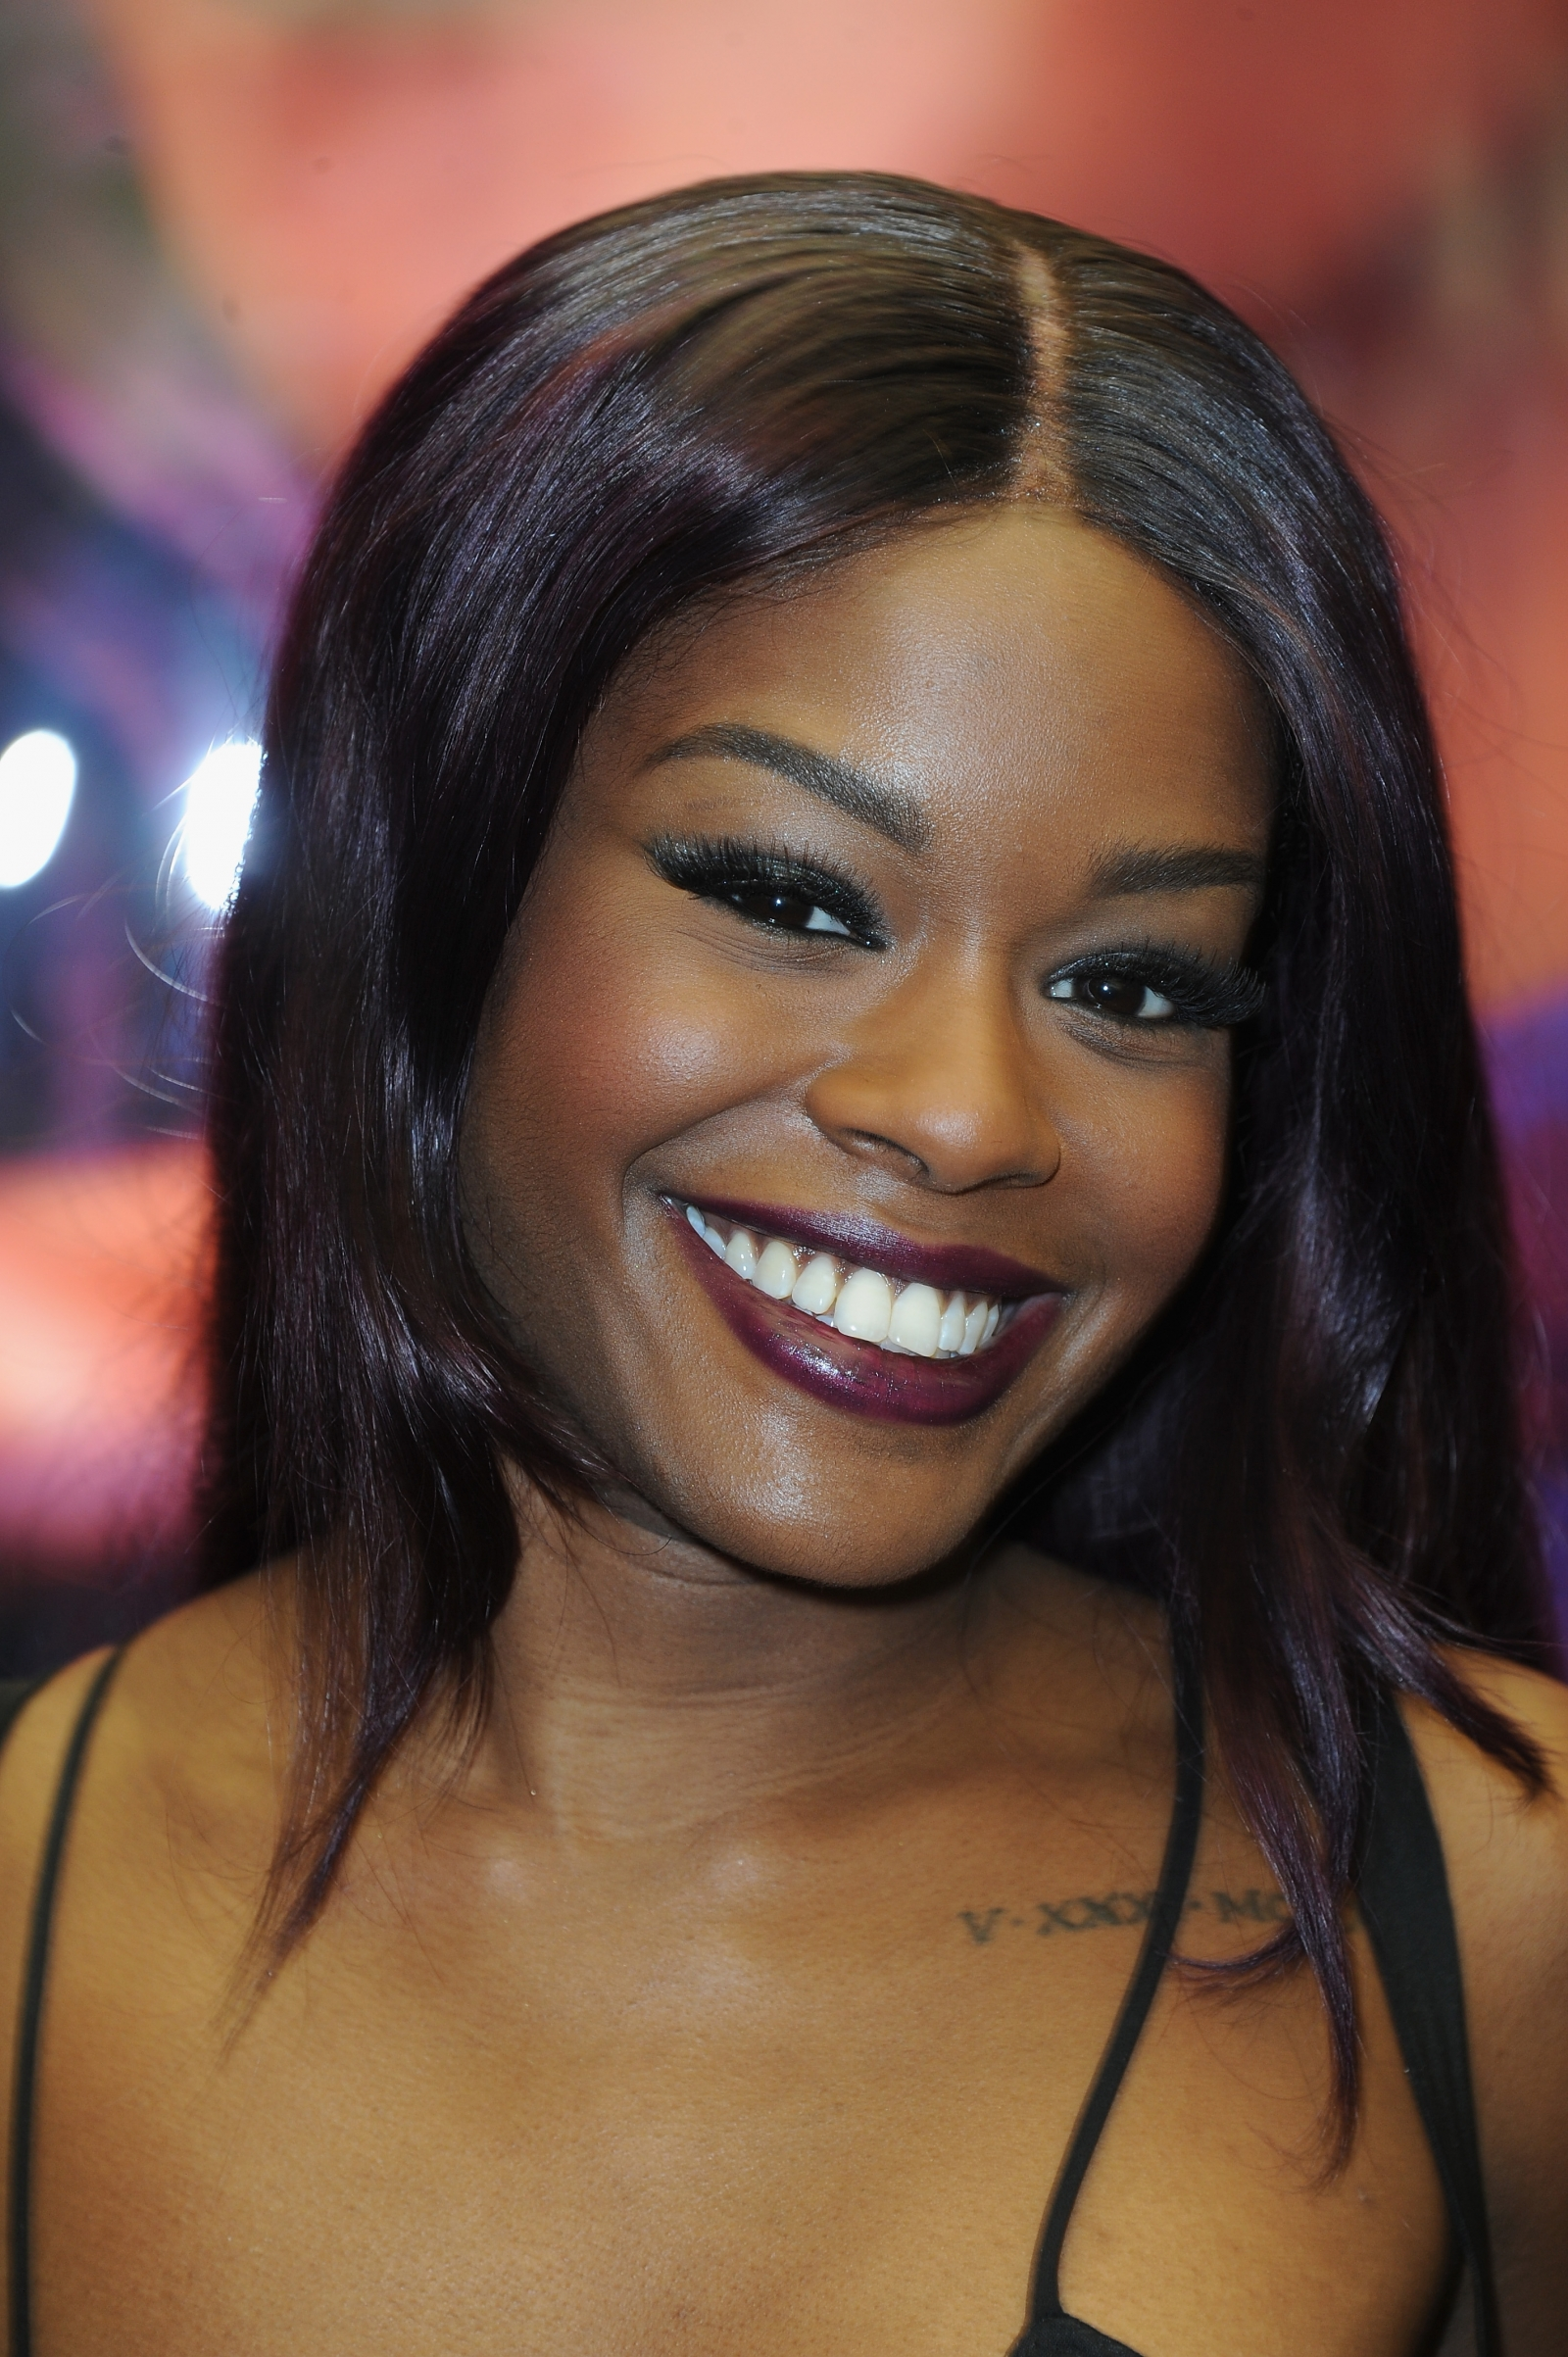 azealia banks - photo #11